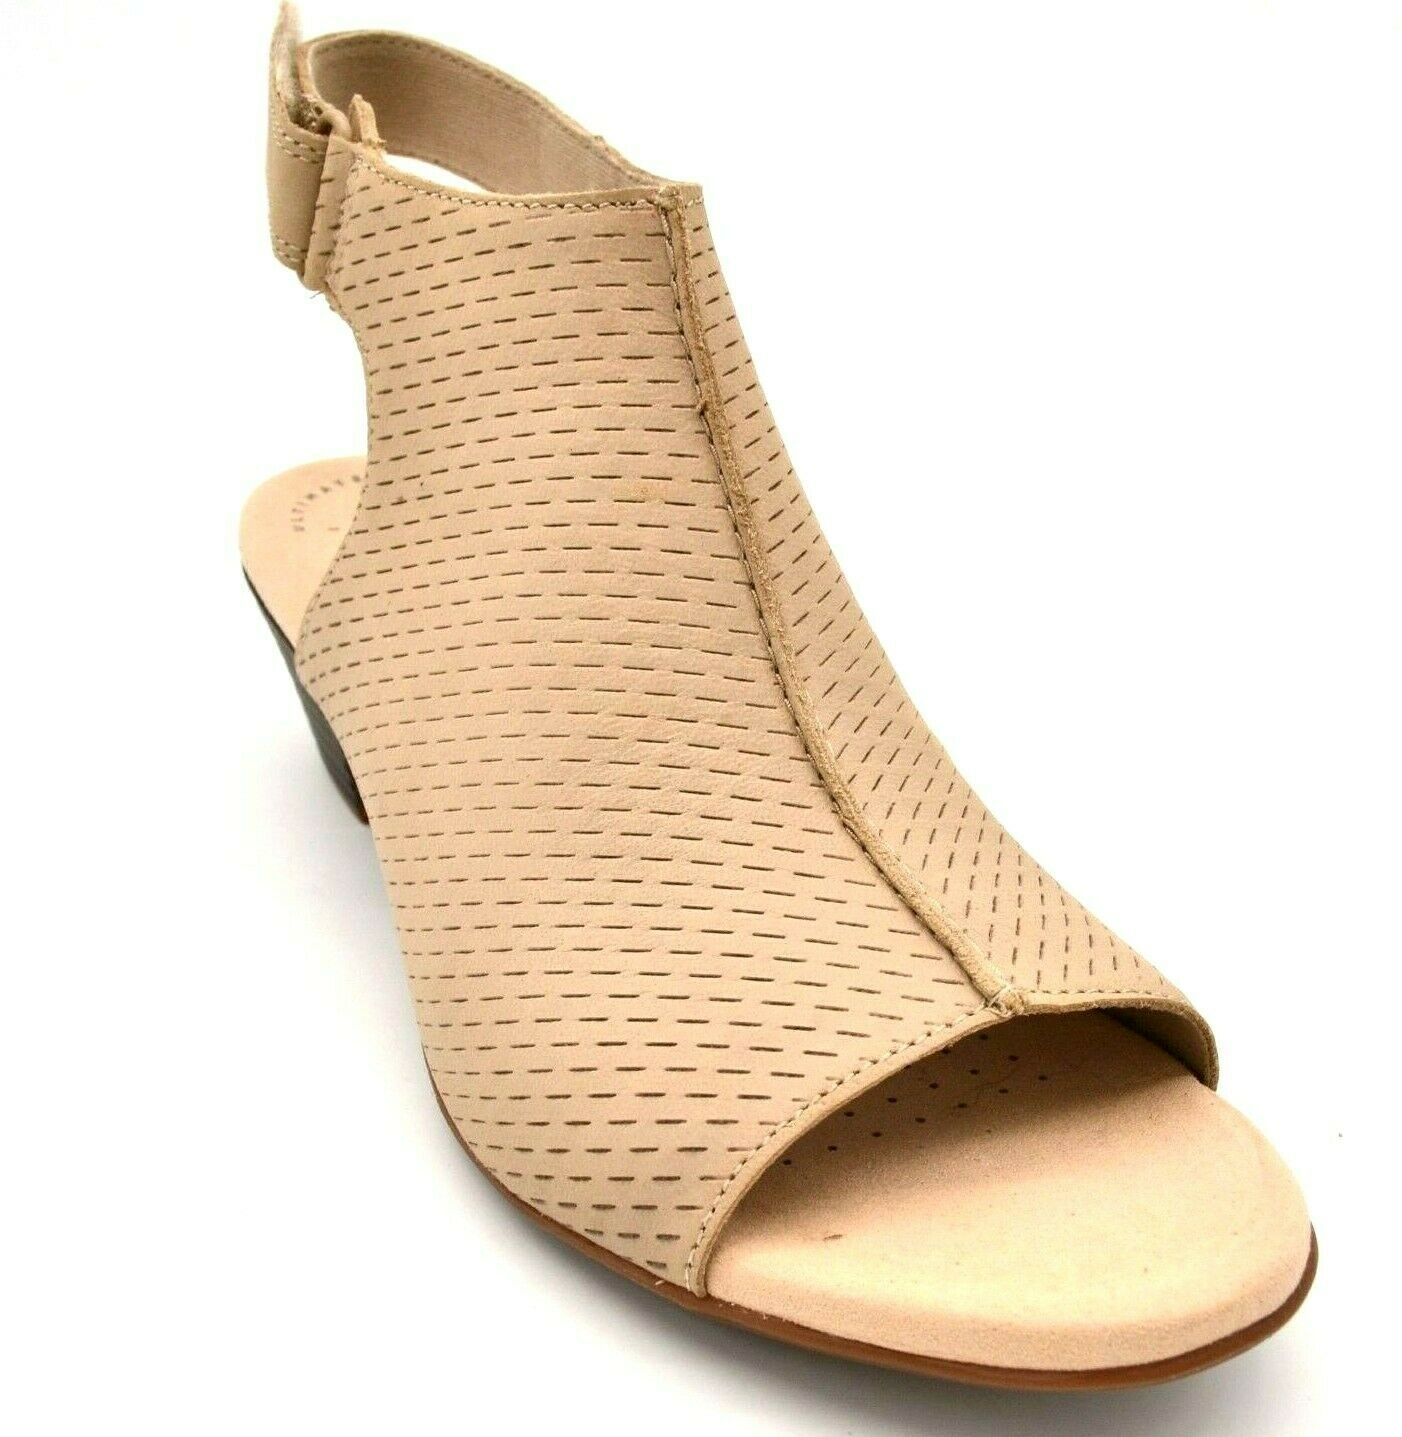 Clarks Womens Valarie James Nubuck Leather Perforated Sandals Sz 8.5M Sand NEW  - $39.59